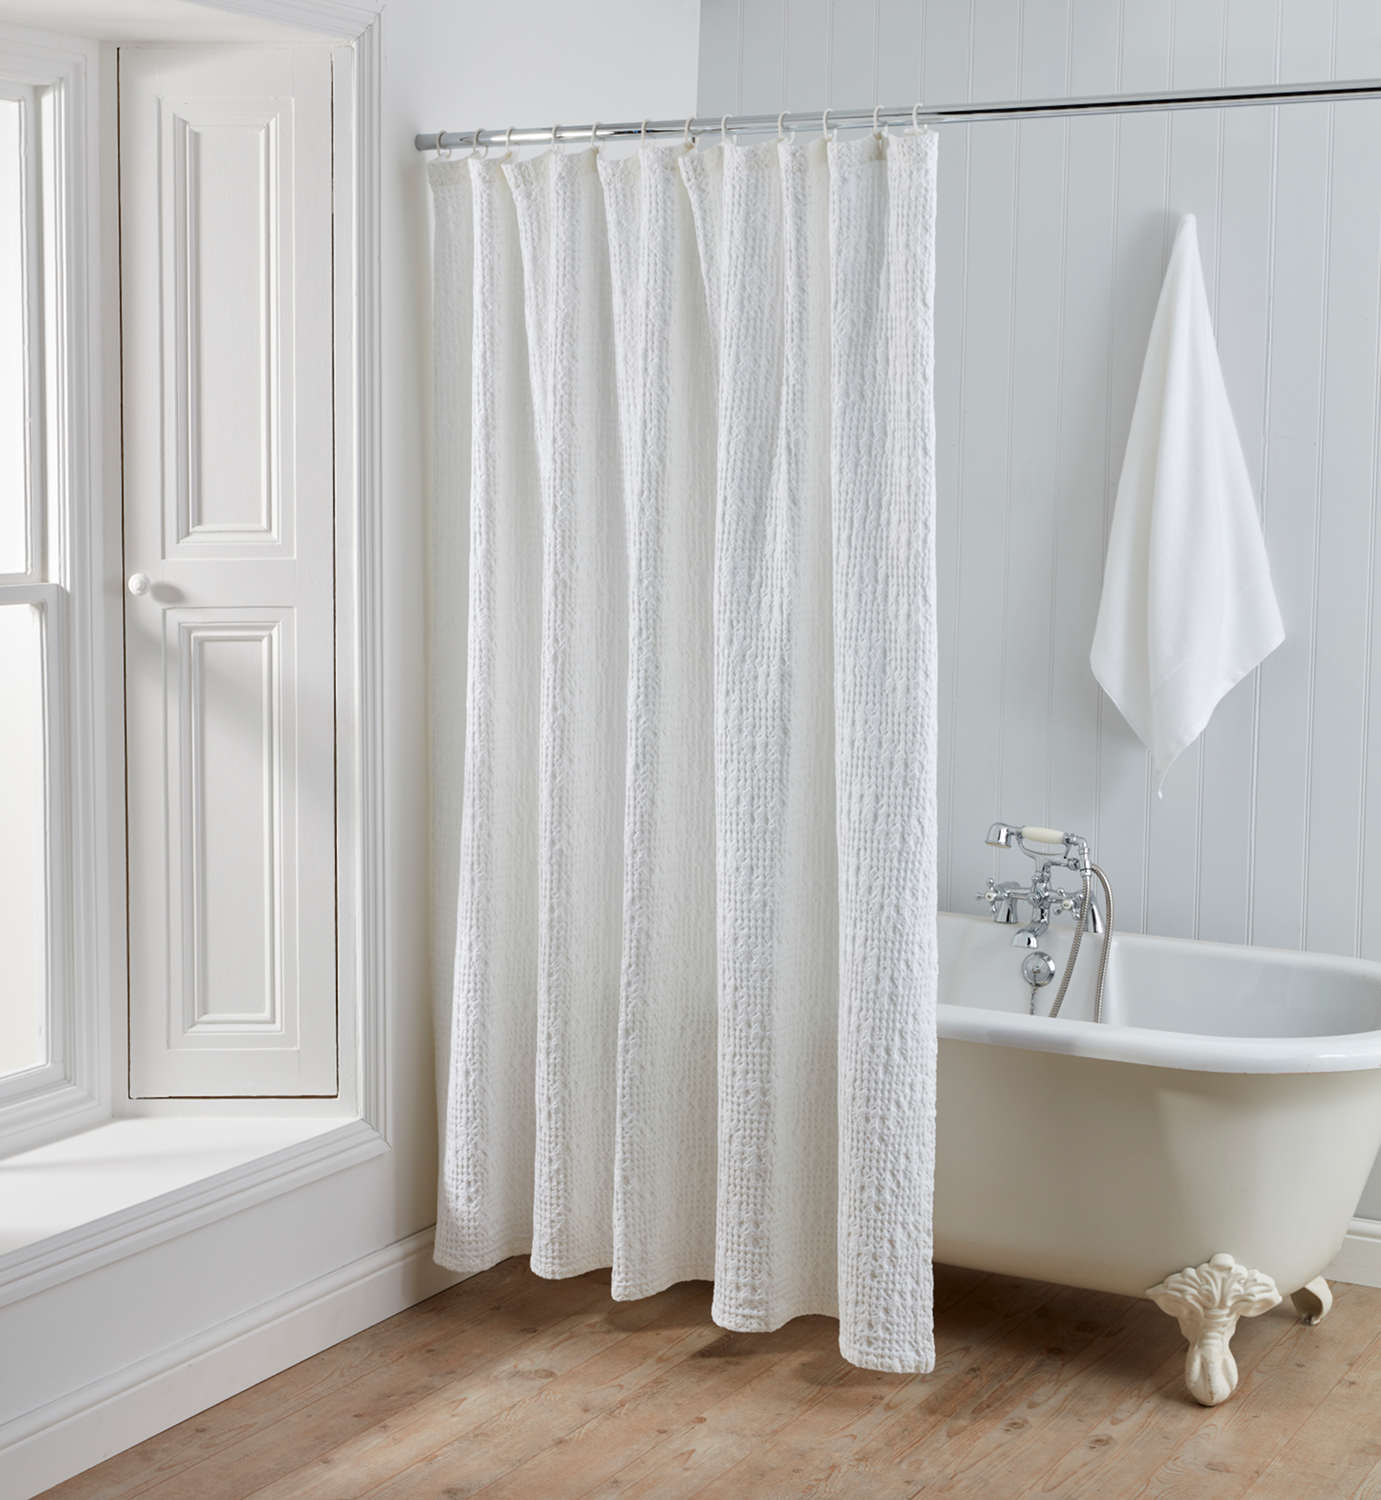 with curtains is the white features for easy beautiful in bathroom waffle this thin light print machine cotton curtain clean pin paisley shower a washable color lines